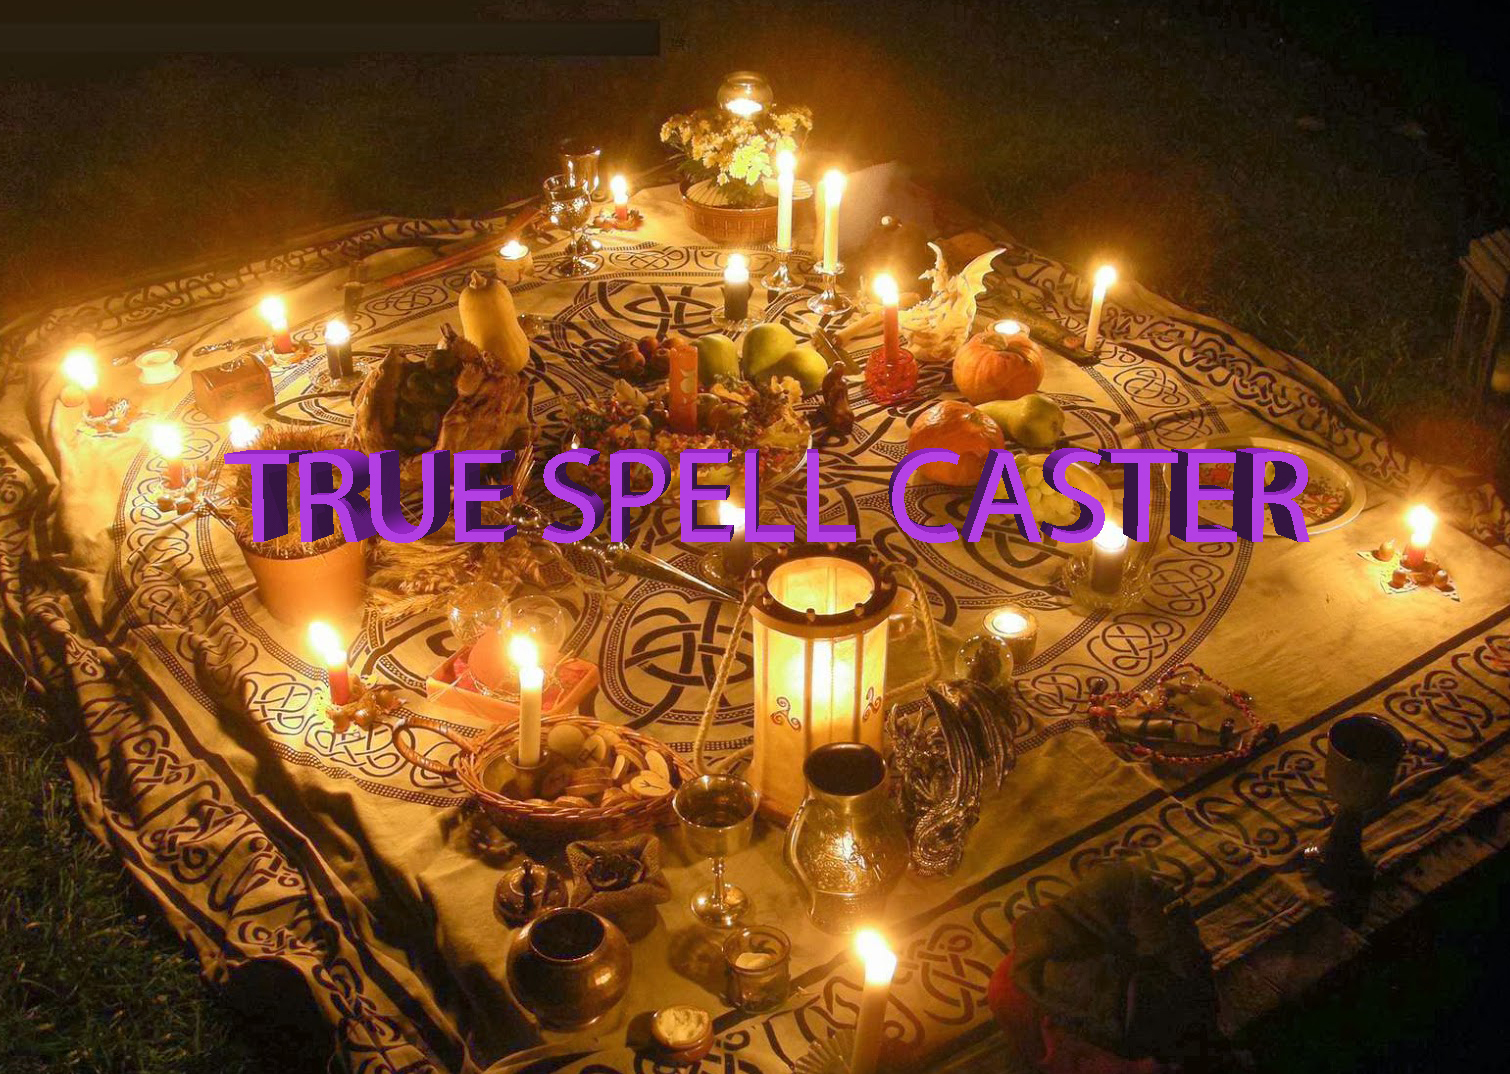 3x CASTING: Ancient SUCCESS spell on your business plan, business cast, Spell, R, used for sale  USA